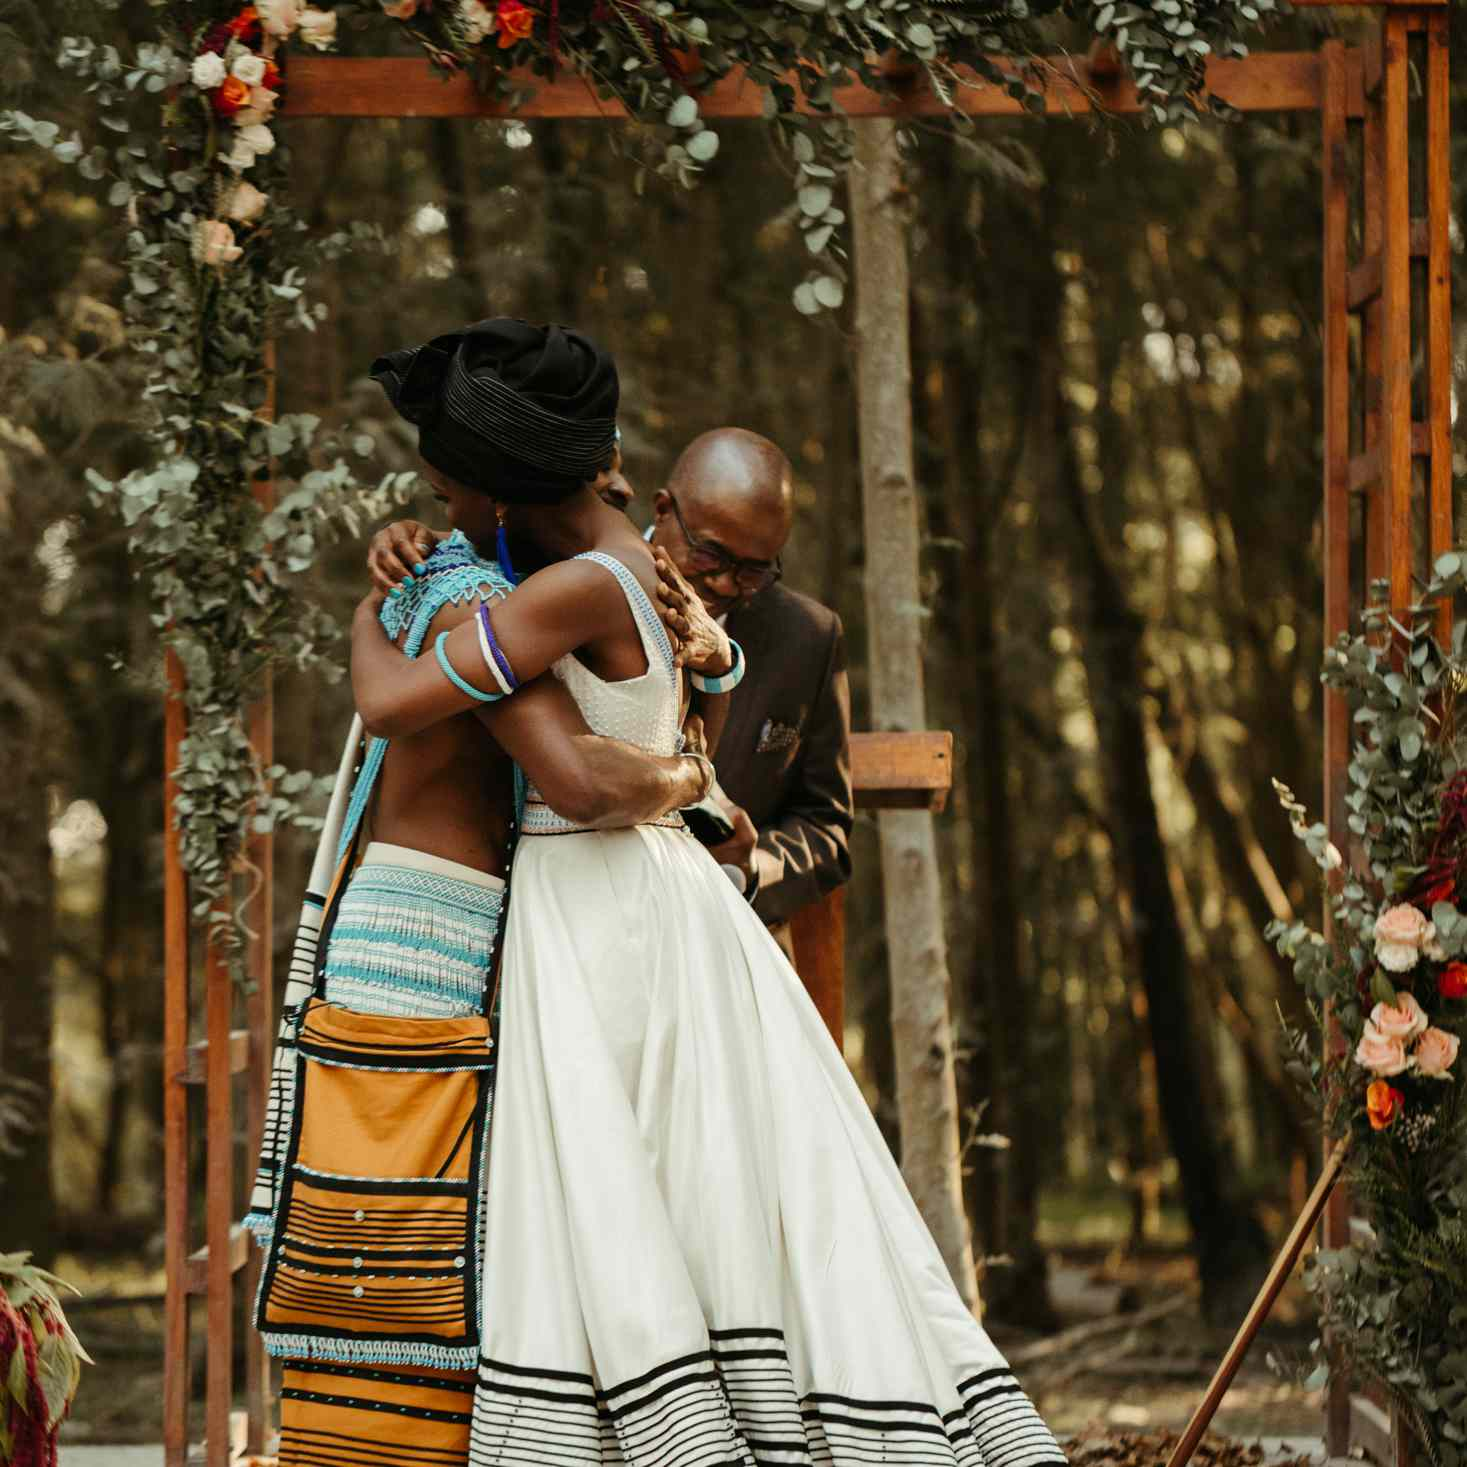 An Authentic Xhosa Wedding Ceremony in South Africa